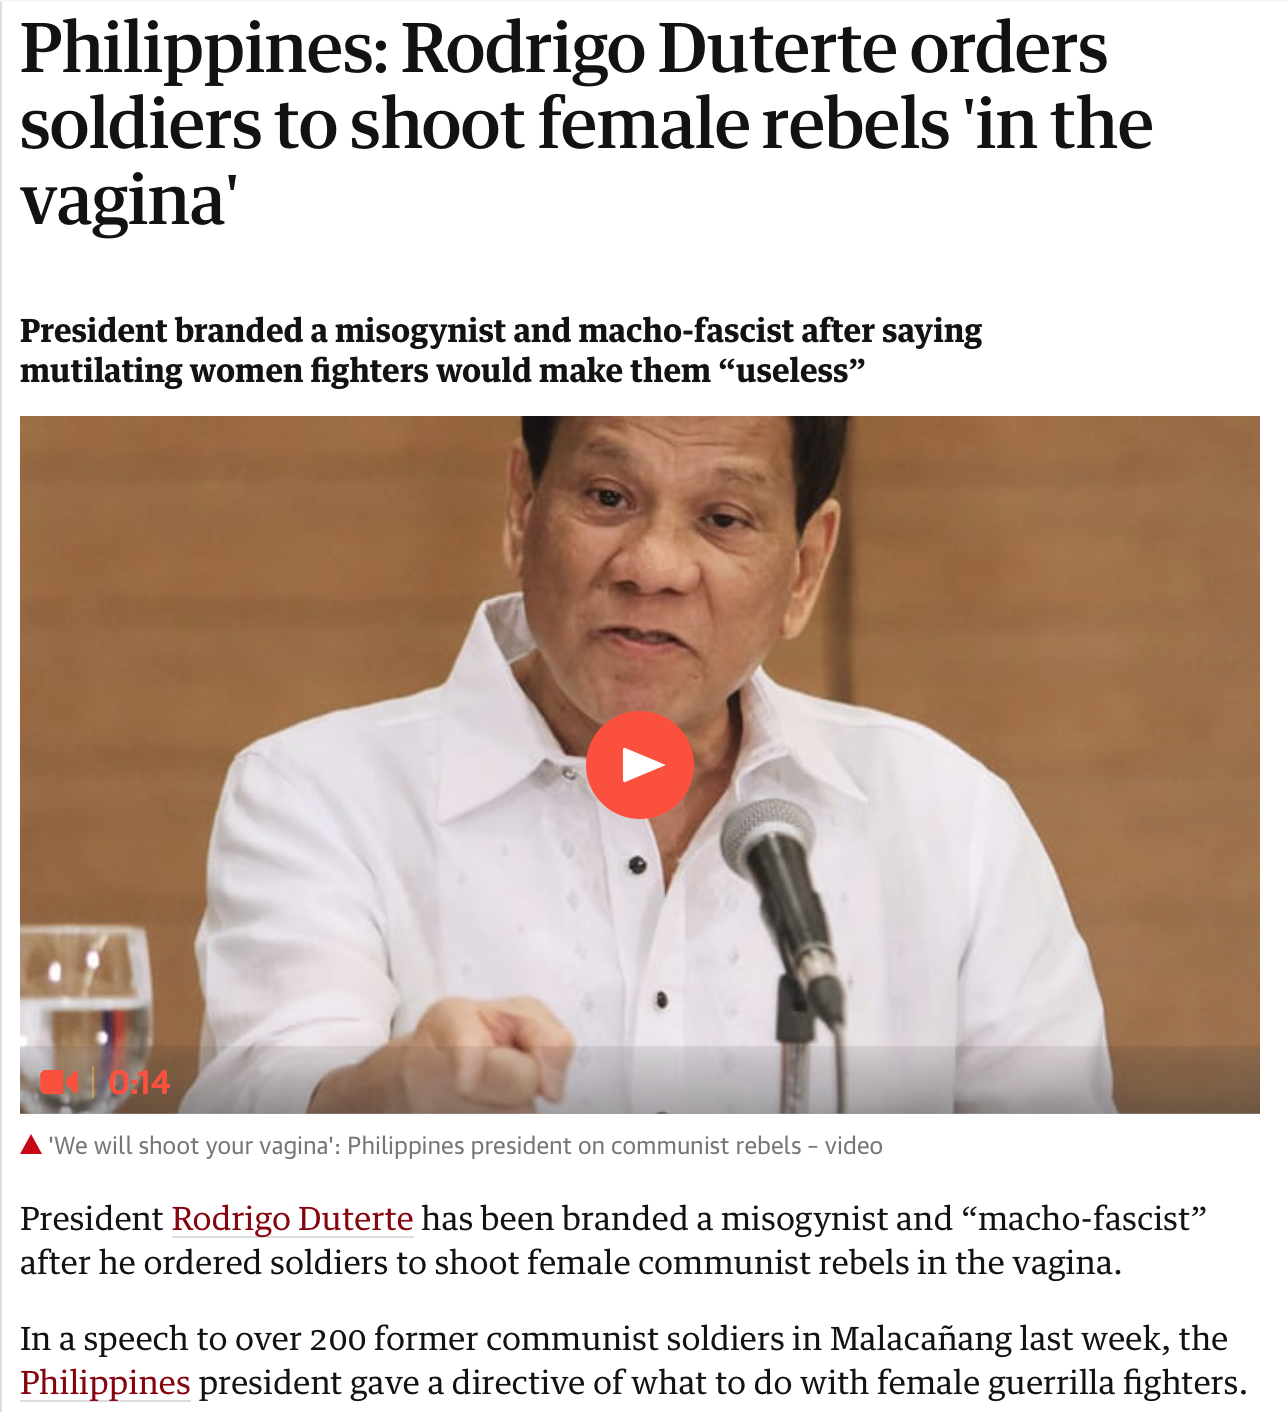 "Without them, ""... women will be useless."" Watch the video and read more at: https://www.theguardian.com/world/2018/feb/13/philippines-rodrigo-duterte-orders-soldiers-to-shoot-female-rebels-in-the-vagina"